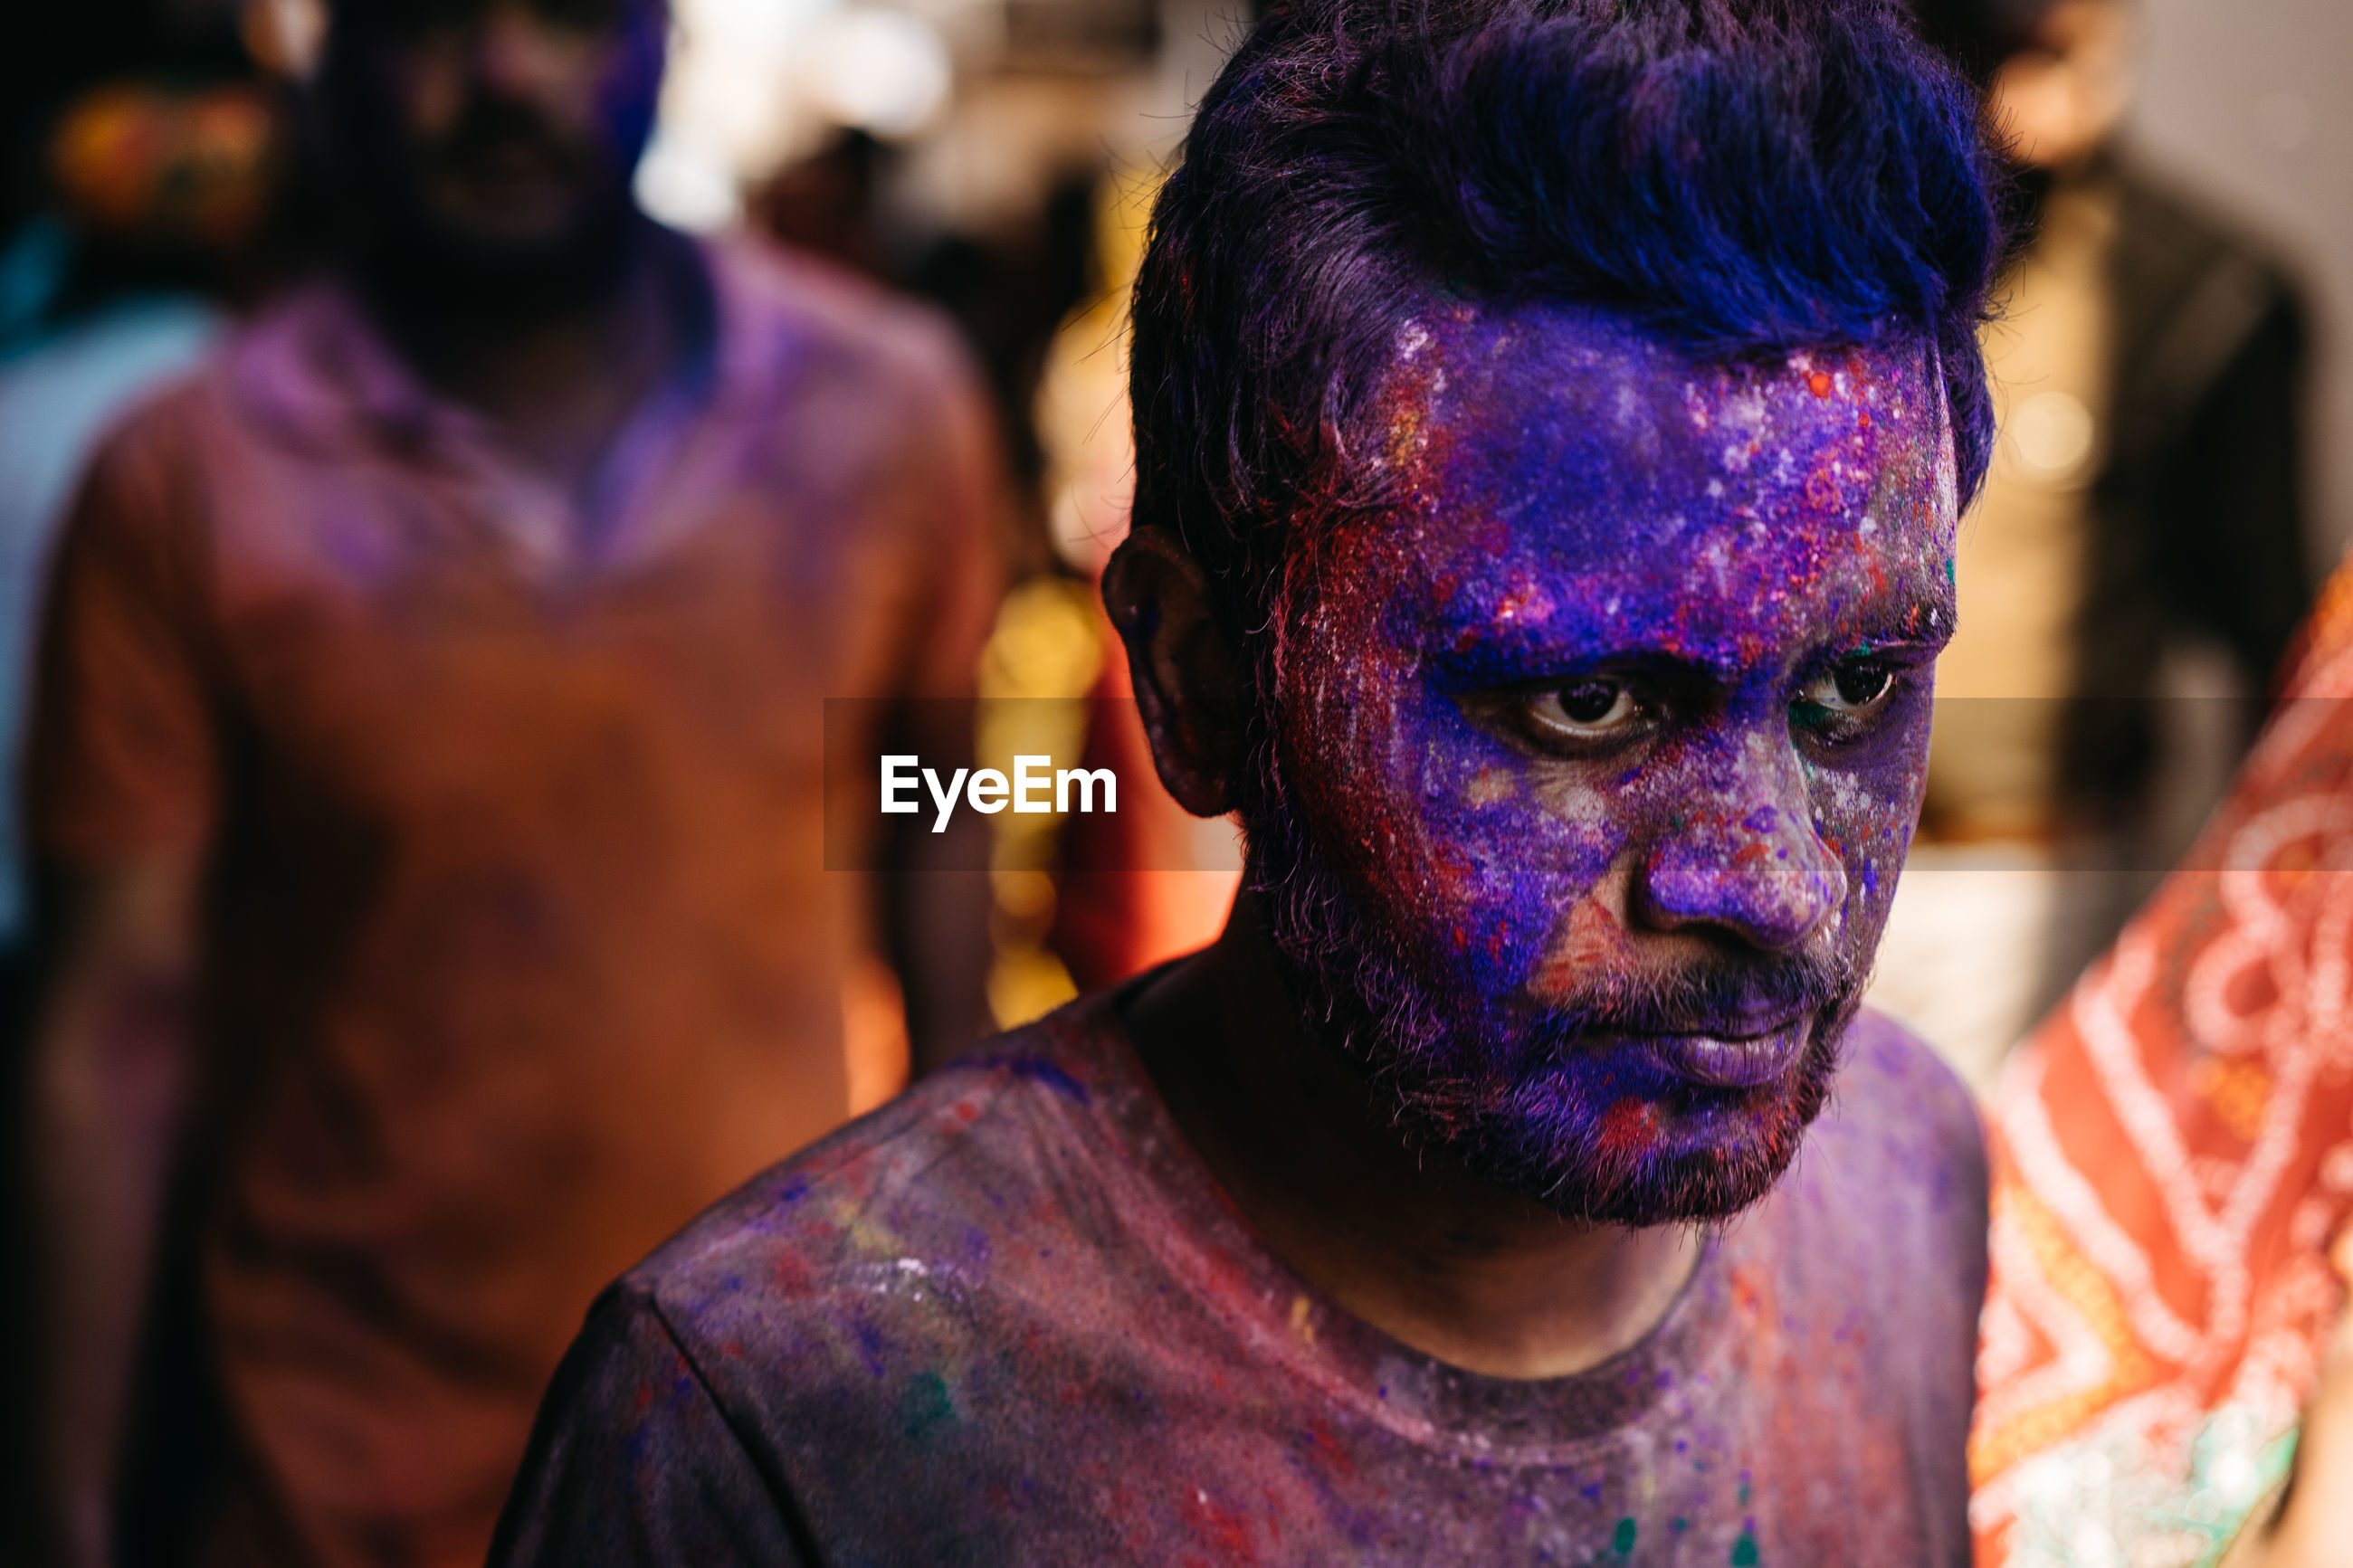 PORTRAIT OF MAN WITH MULTI COLORED FACE IN BACKGROUND